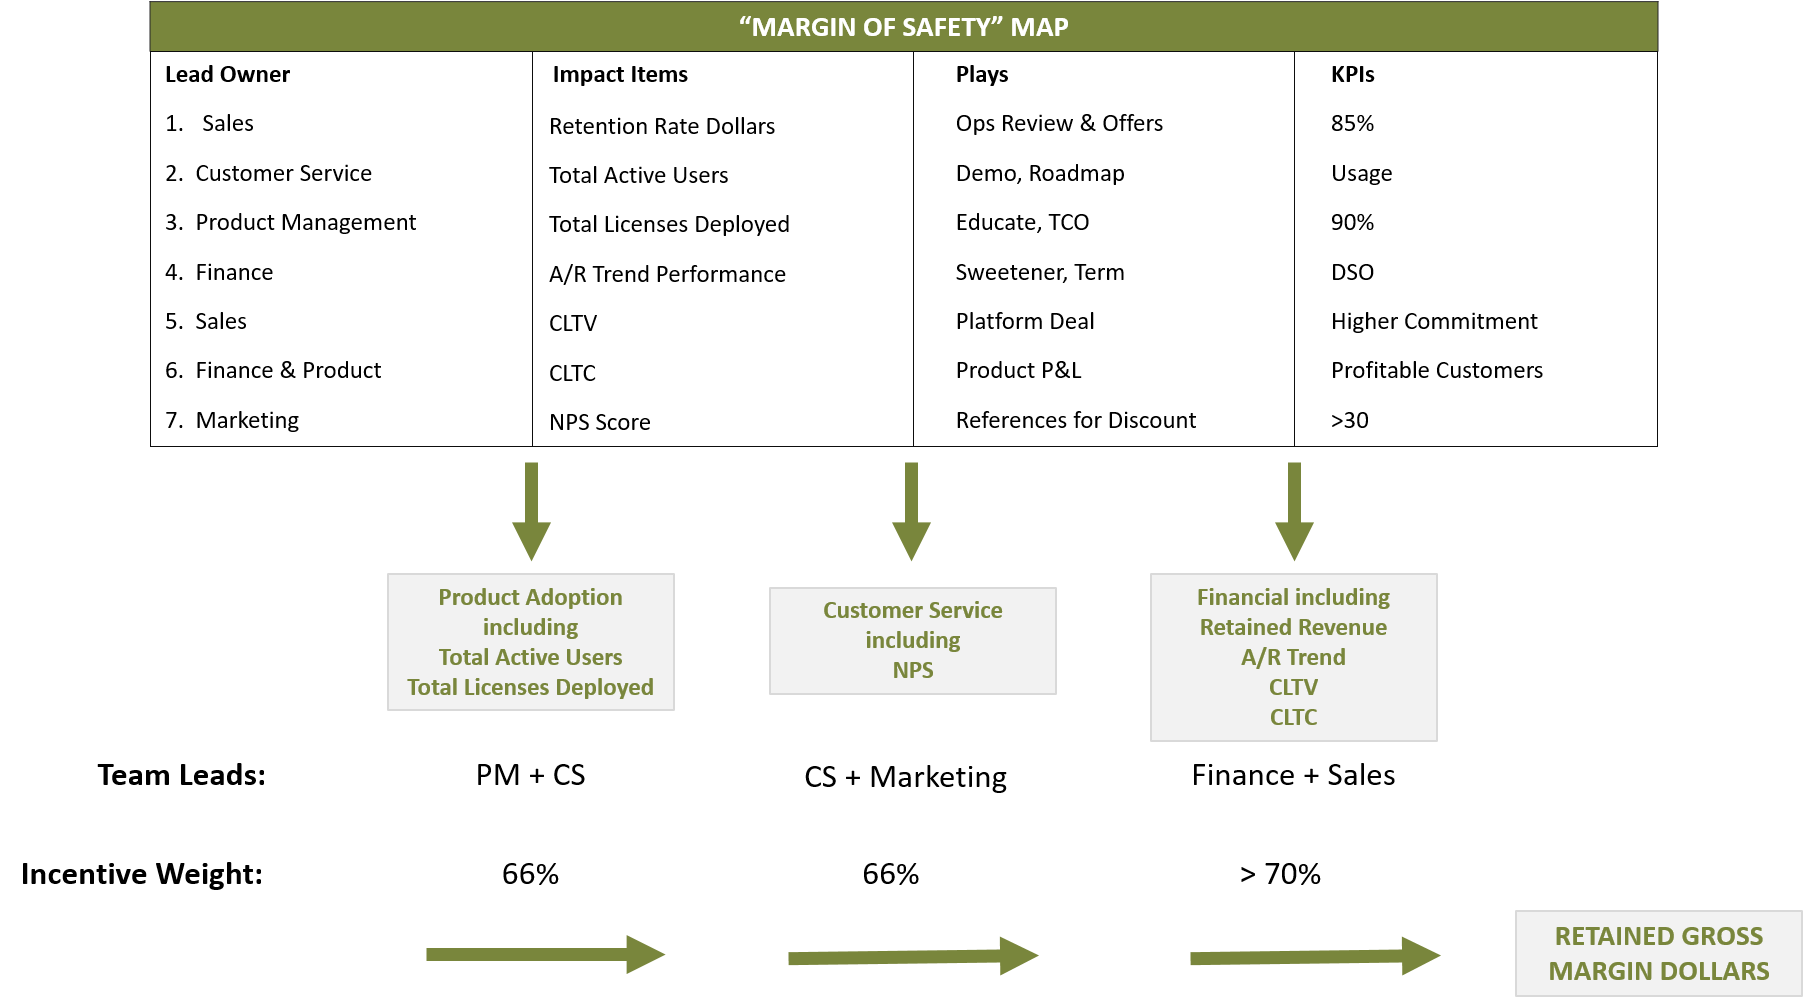 Margin of Safety Map